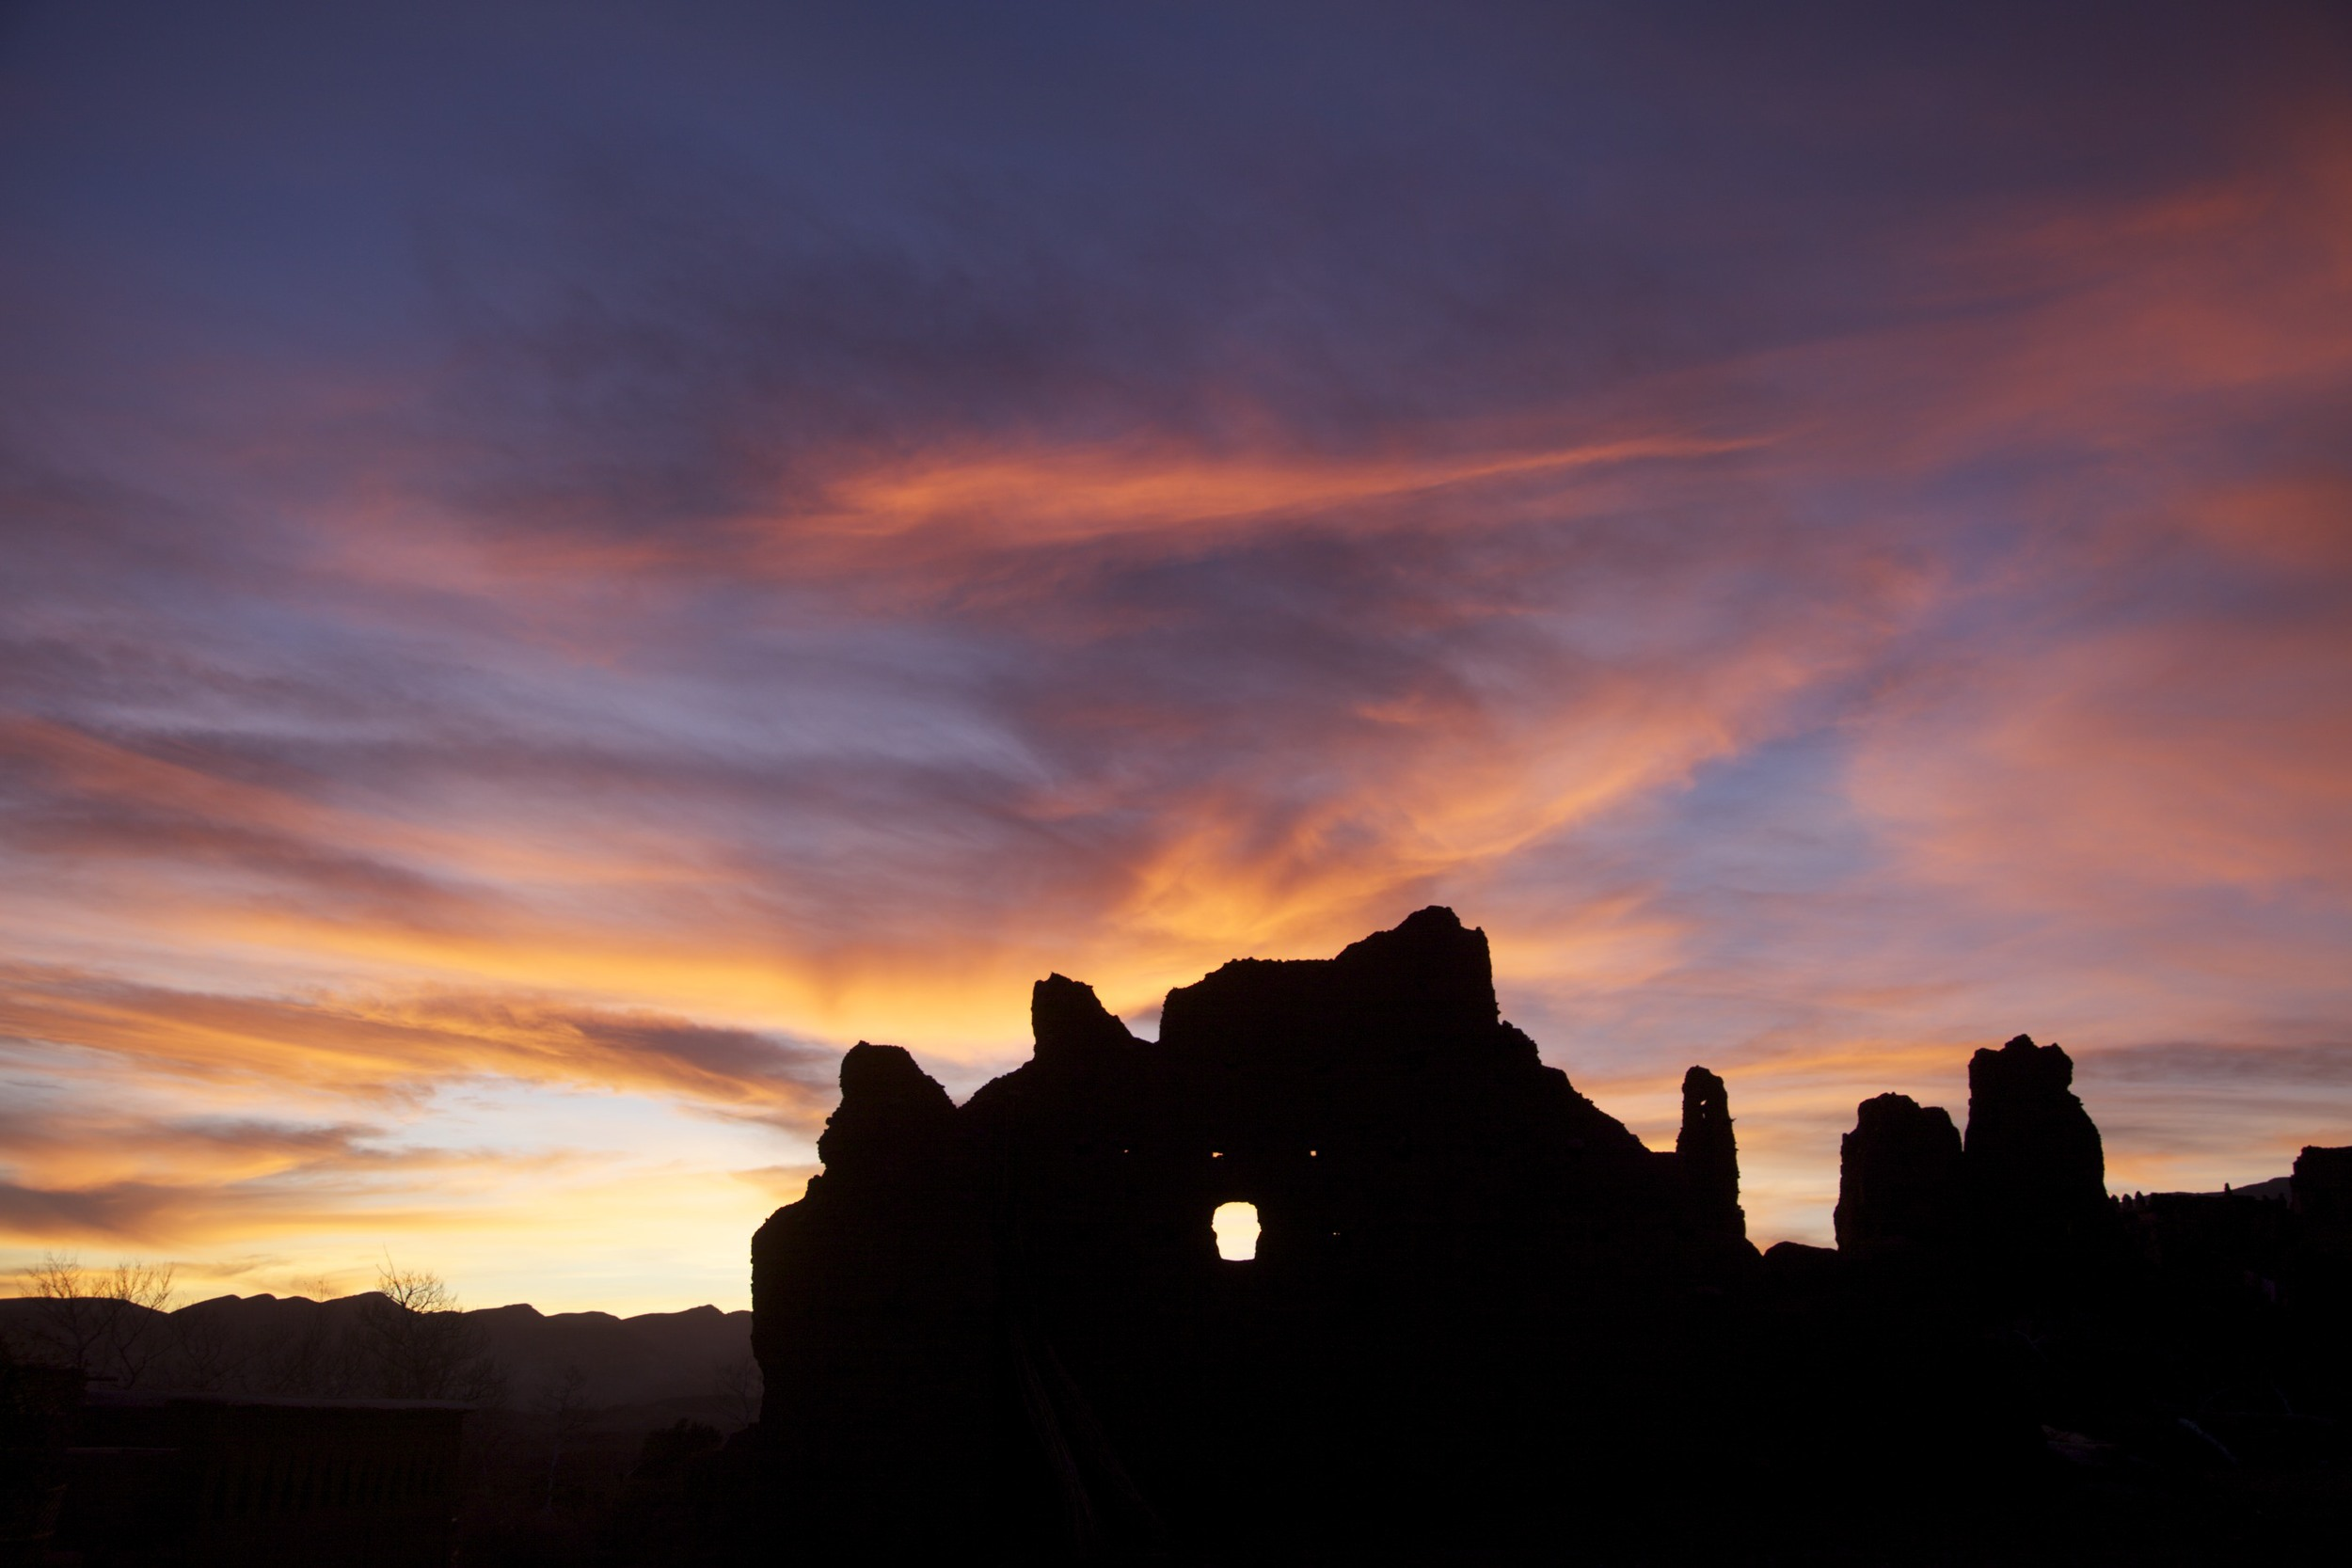 Sunset over the ruins of Telouet kasbah on the way back to Marrakech.